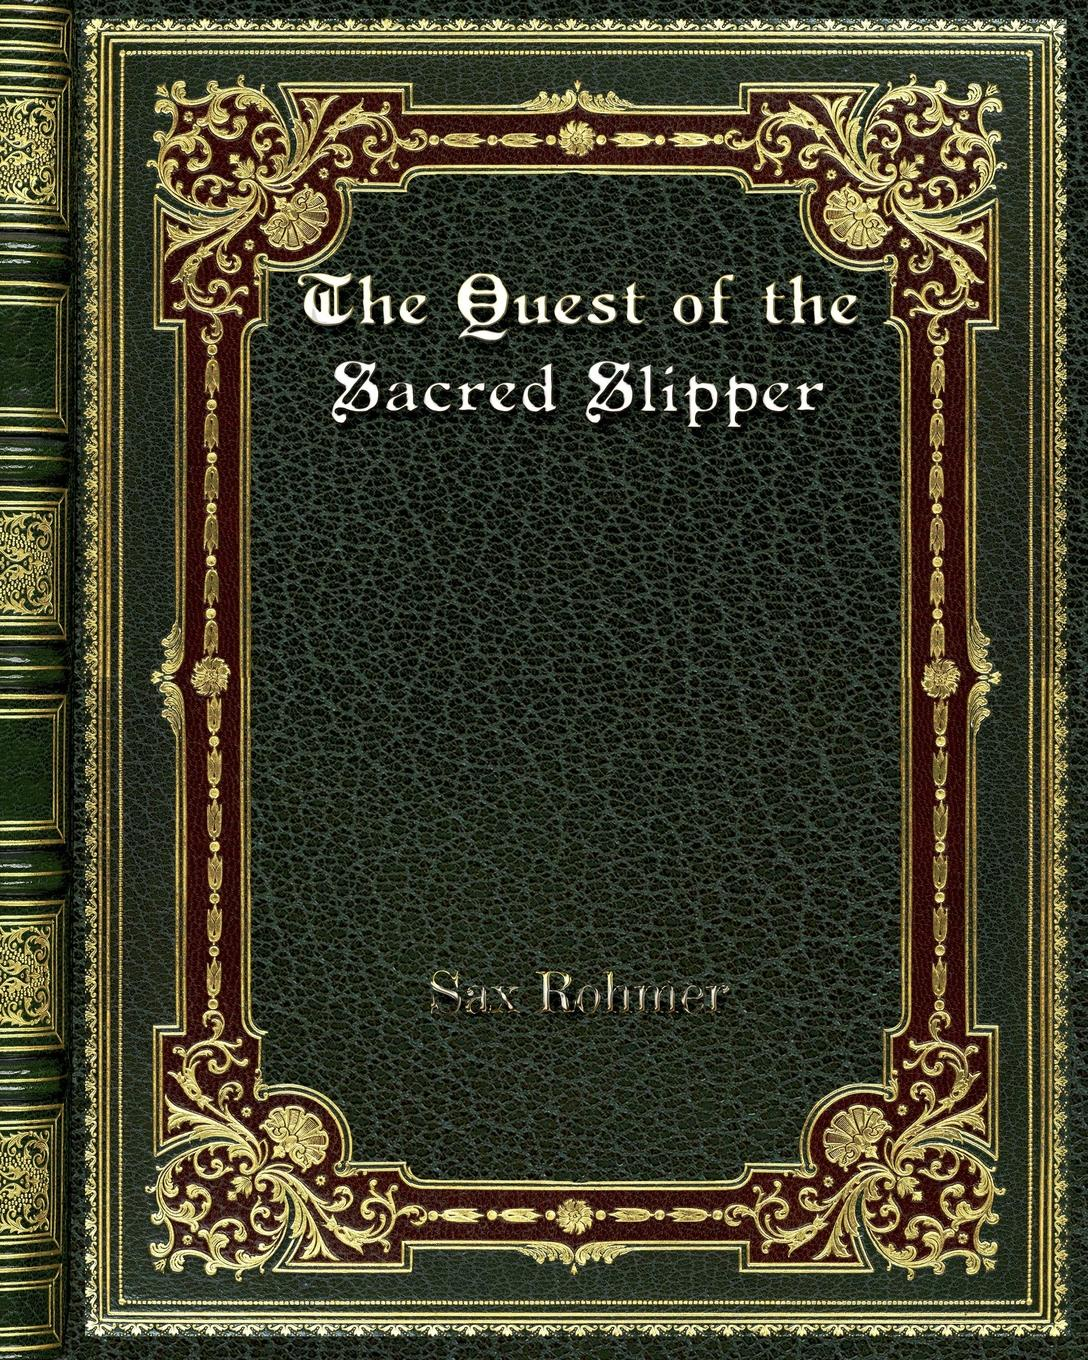 Sax Rohmer The Quest of the Sacred Slipper